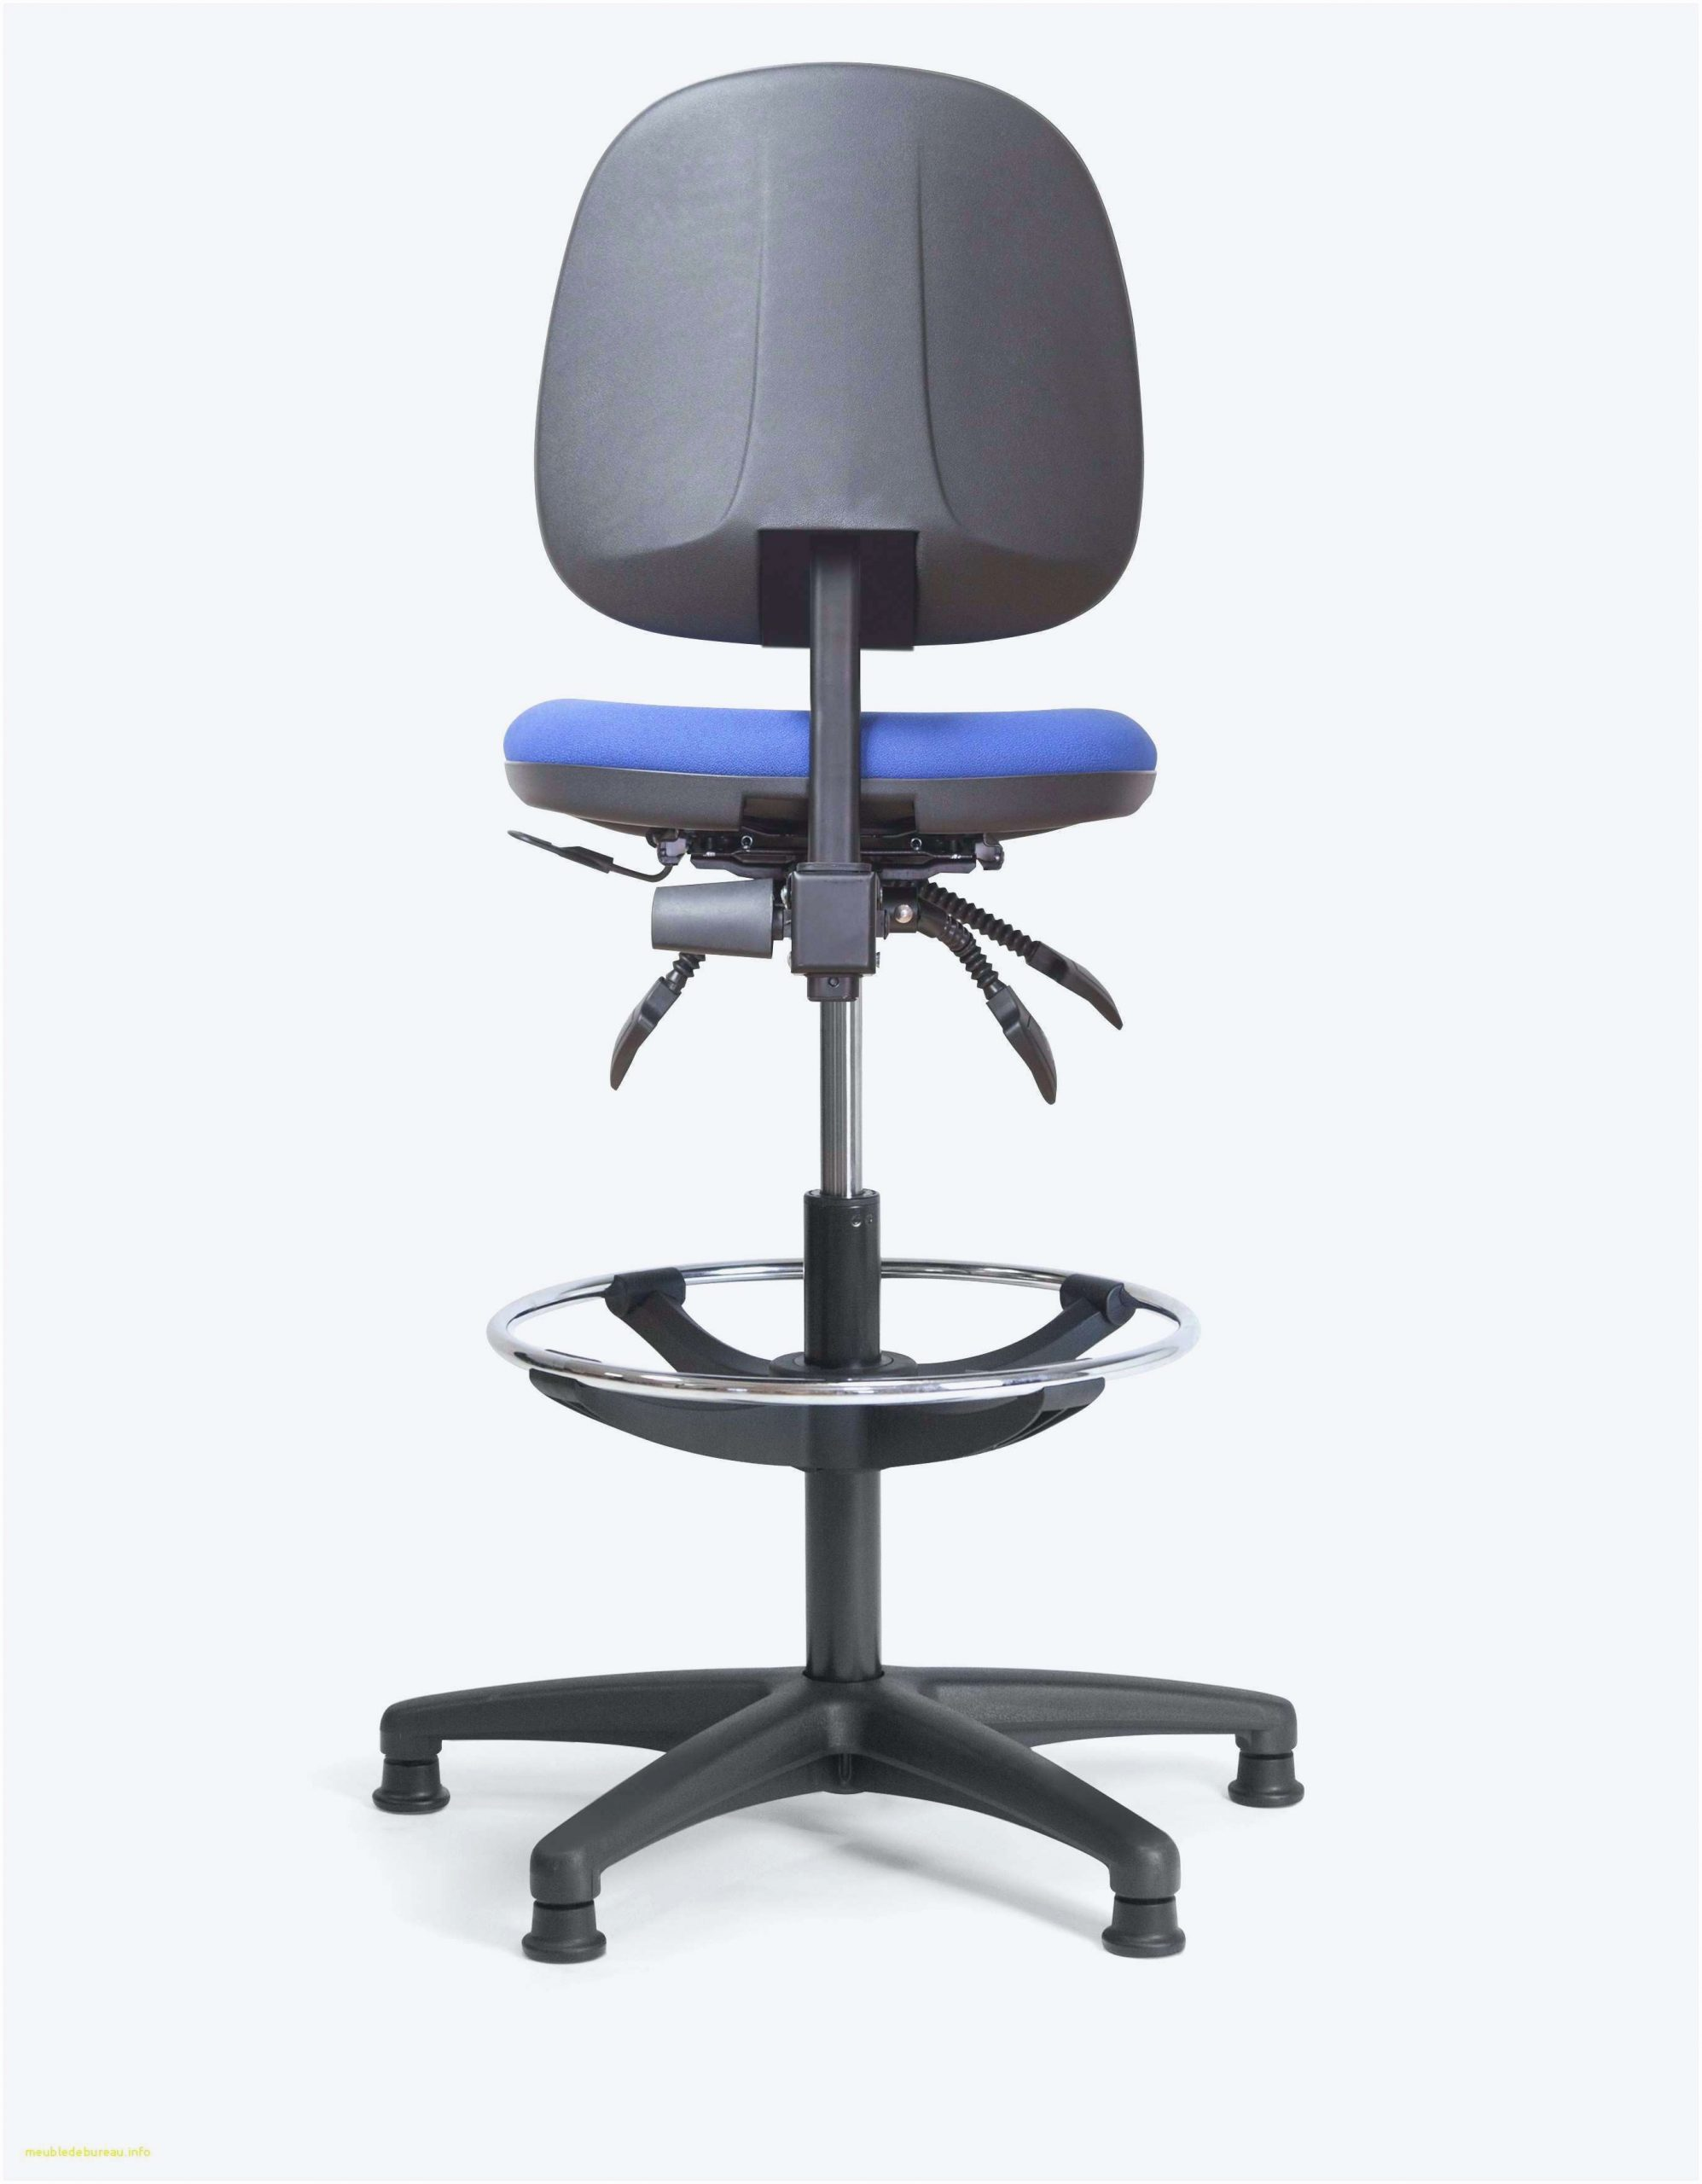 Tabouret Assis Debout Impressionnant Luxe Siege Assis Debout ... tout Bureau Assis Debout Conforama